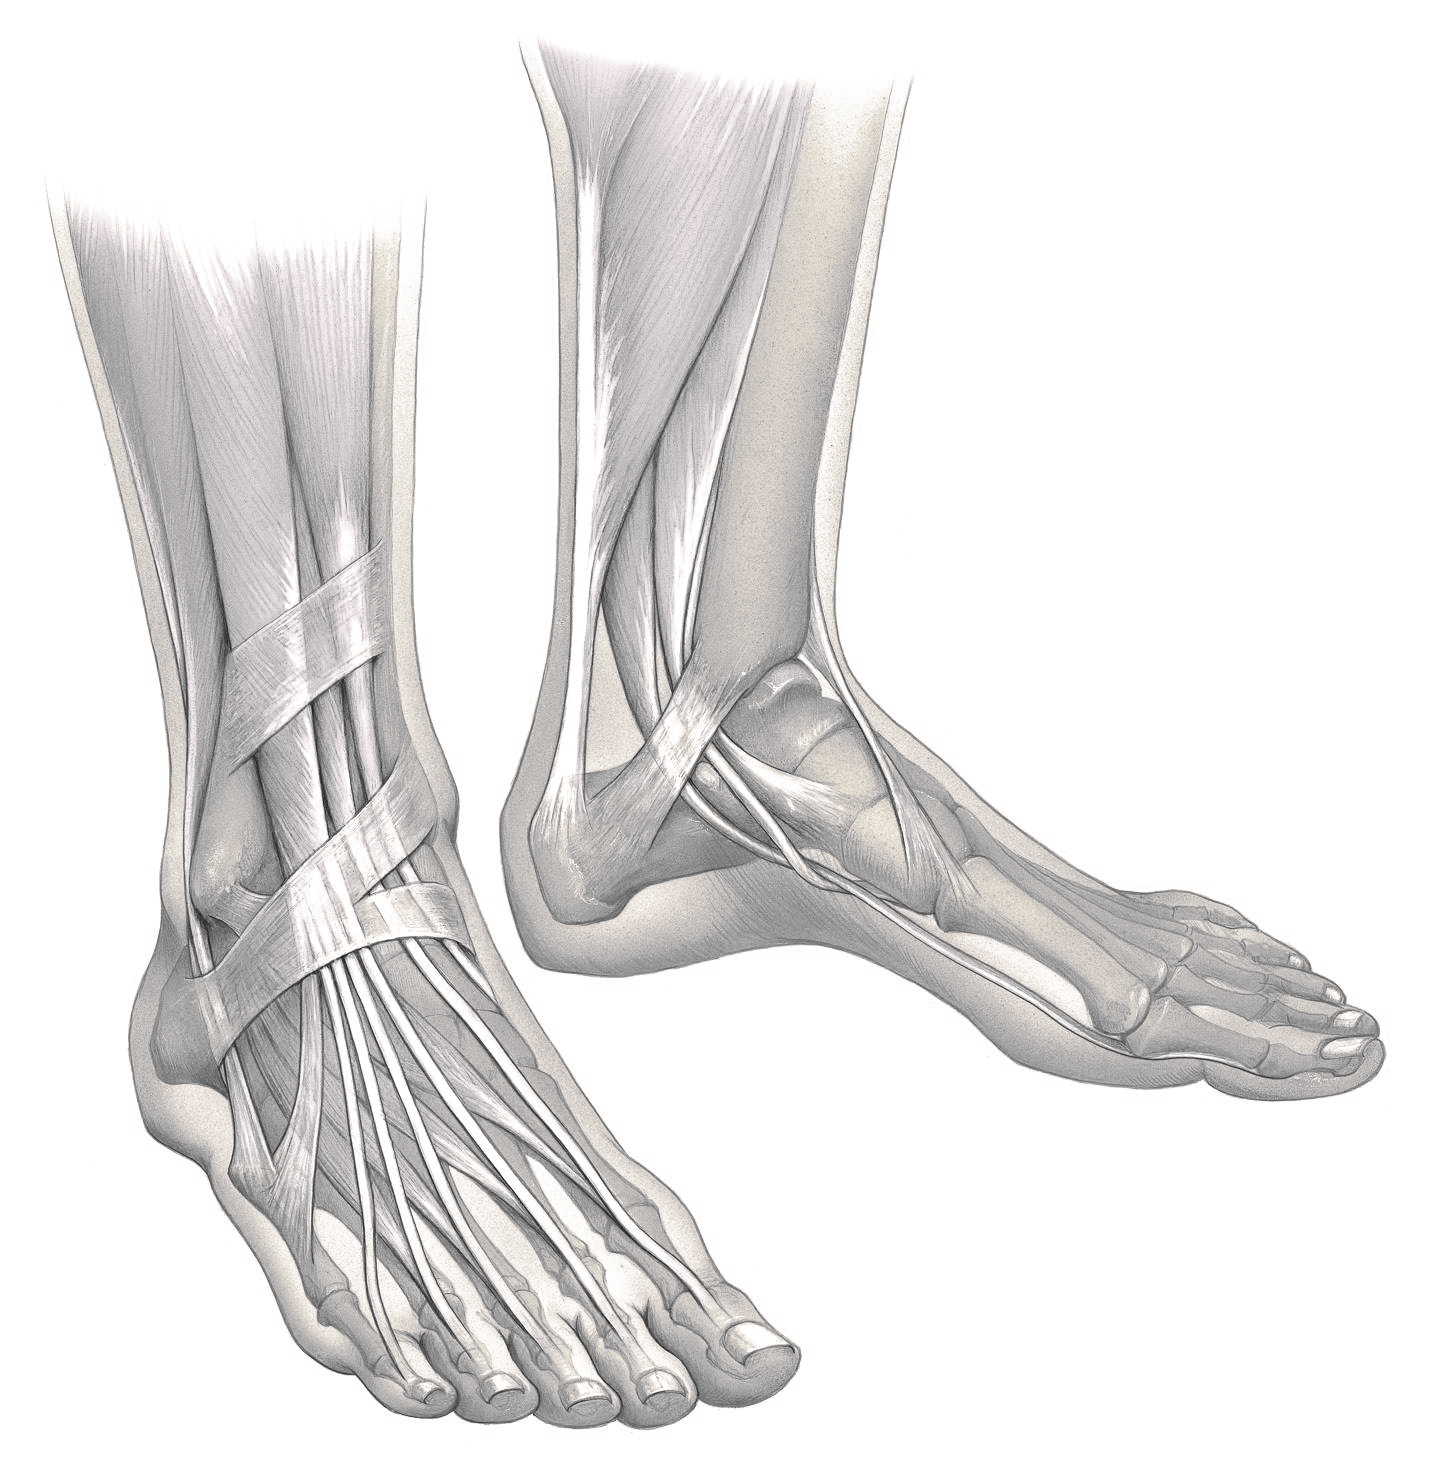 Black and white image of Foot and ankle anatomy